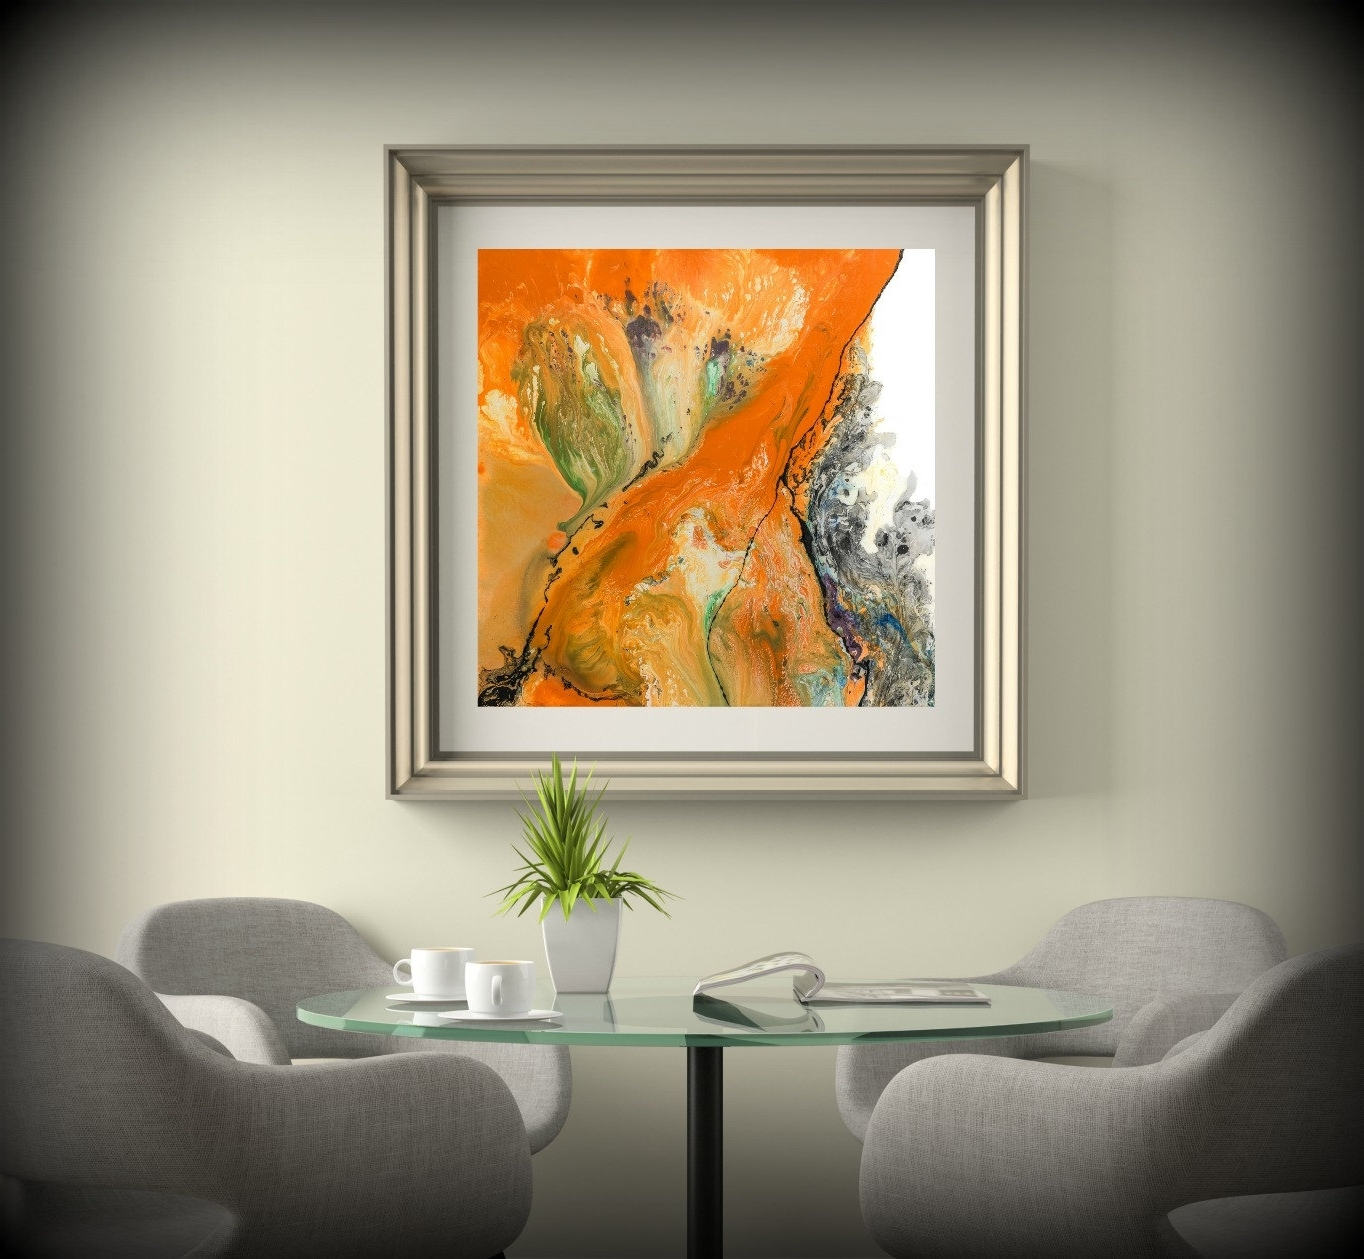 Canvas Wall Art For Dining Room Inside Most Recent Living Room Decor Square Wall Decor Orange Wall Art Dining Room (View 15 of 15)